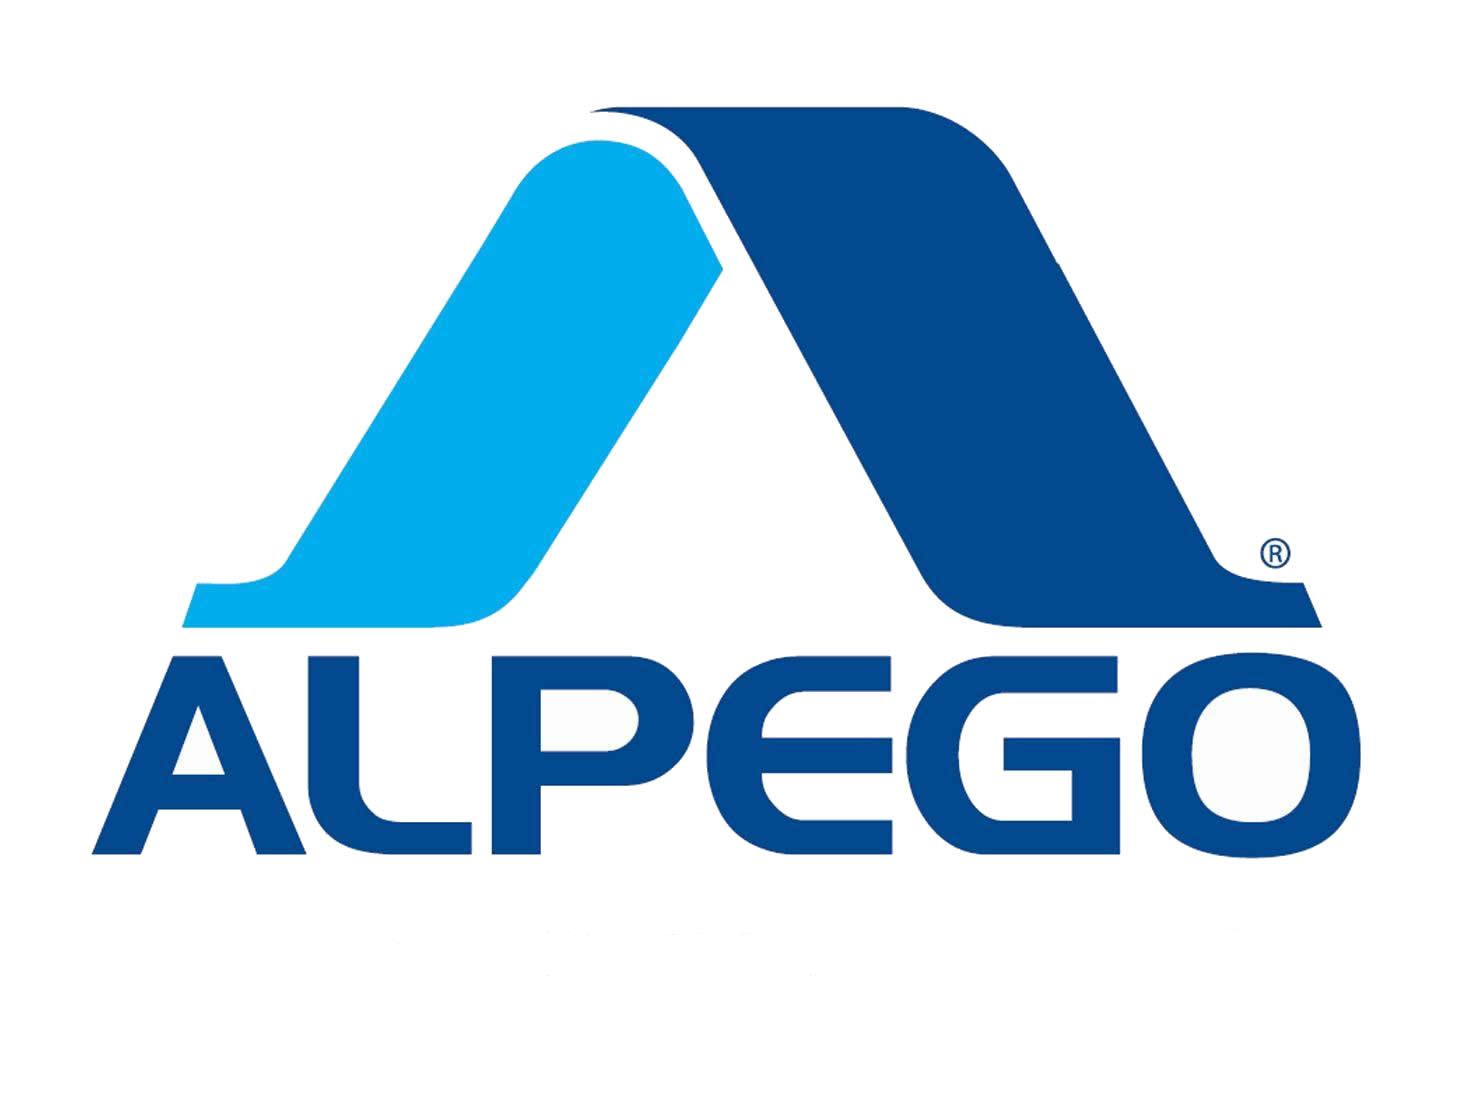 Alpego Culitvation Equipment